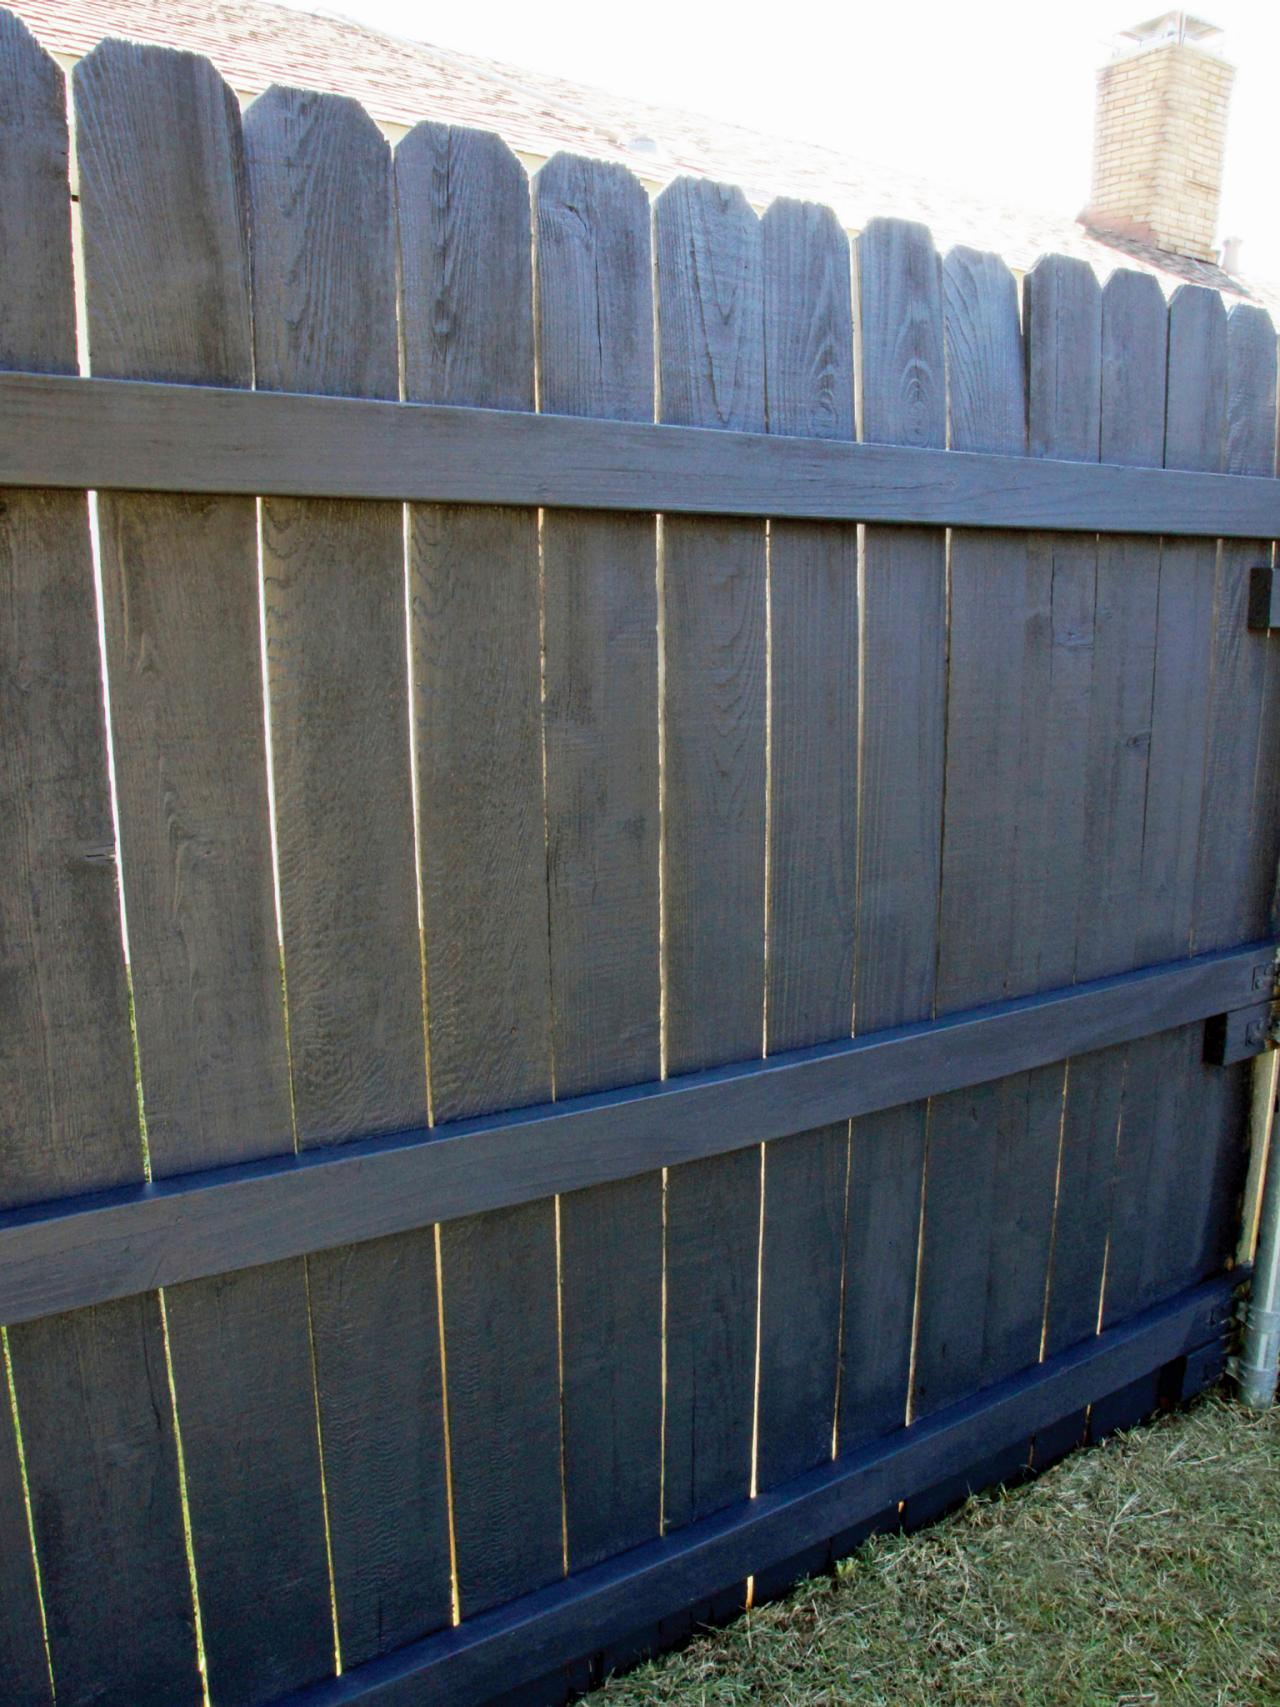 Fence Painting and Staining Guide Quick Tips